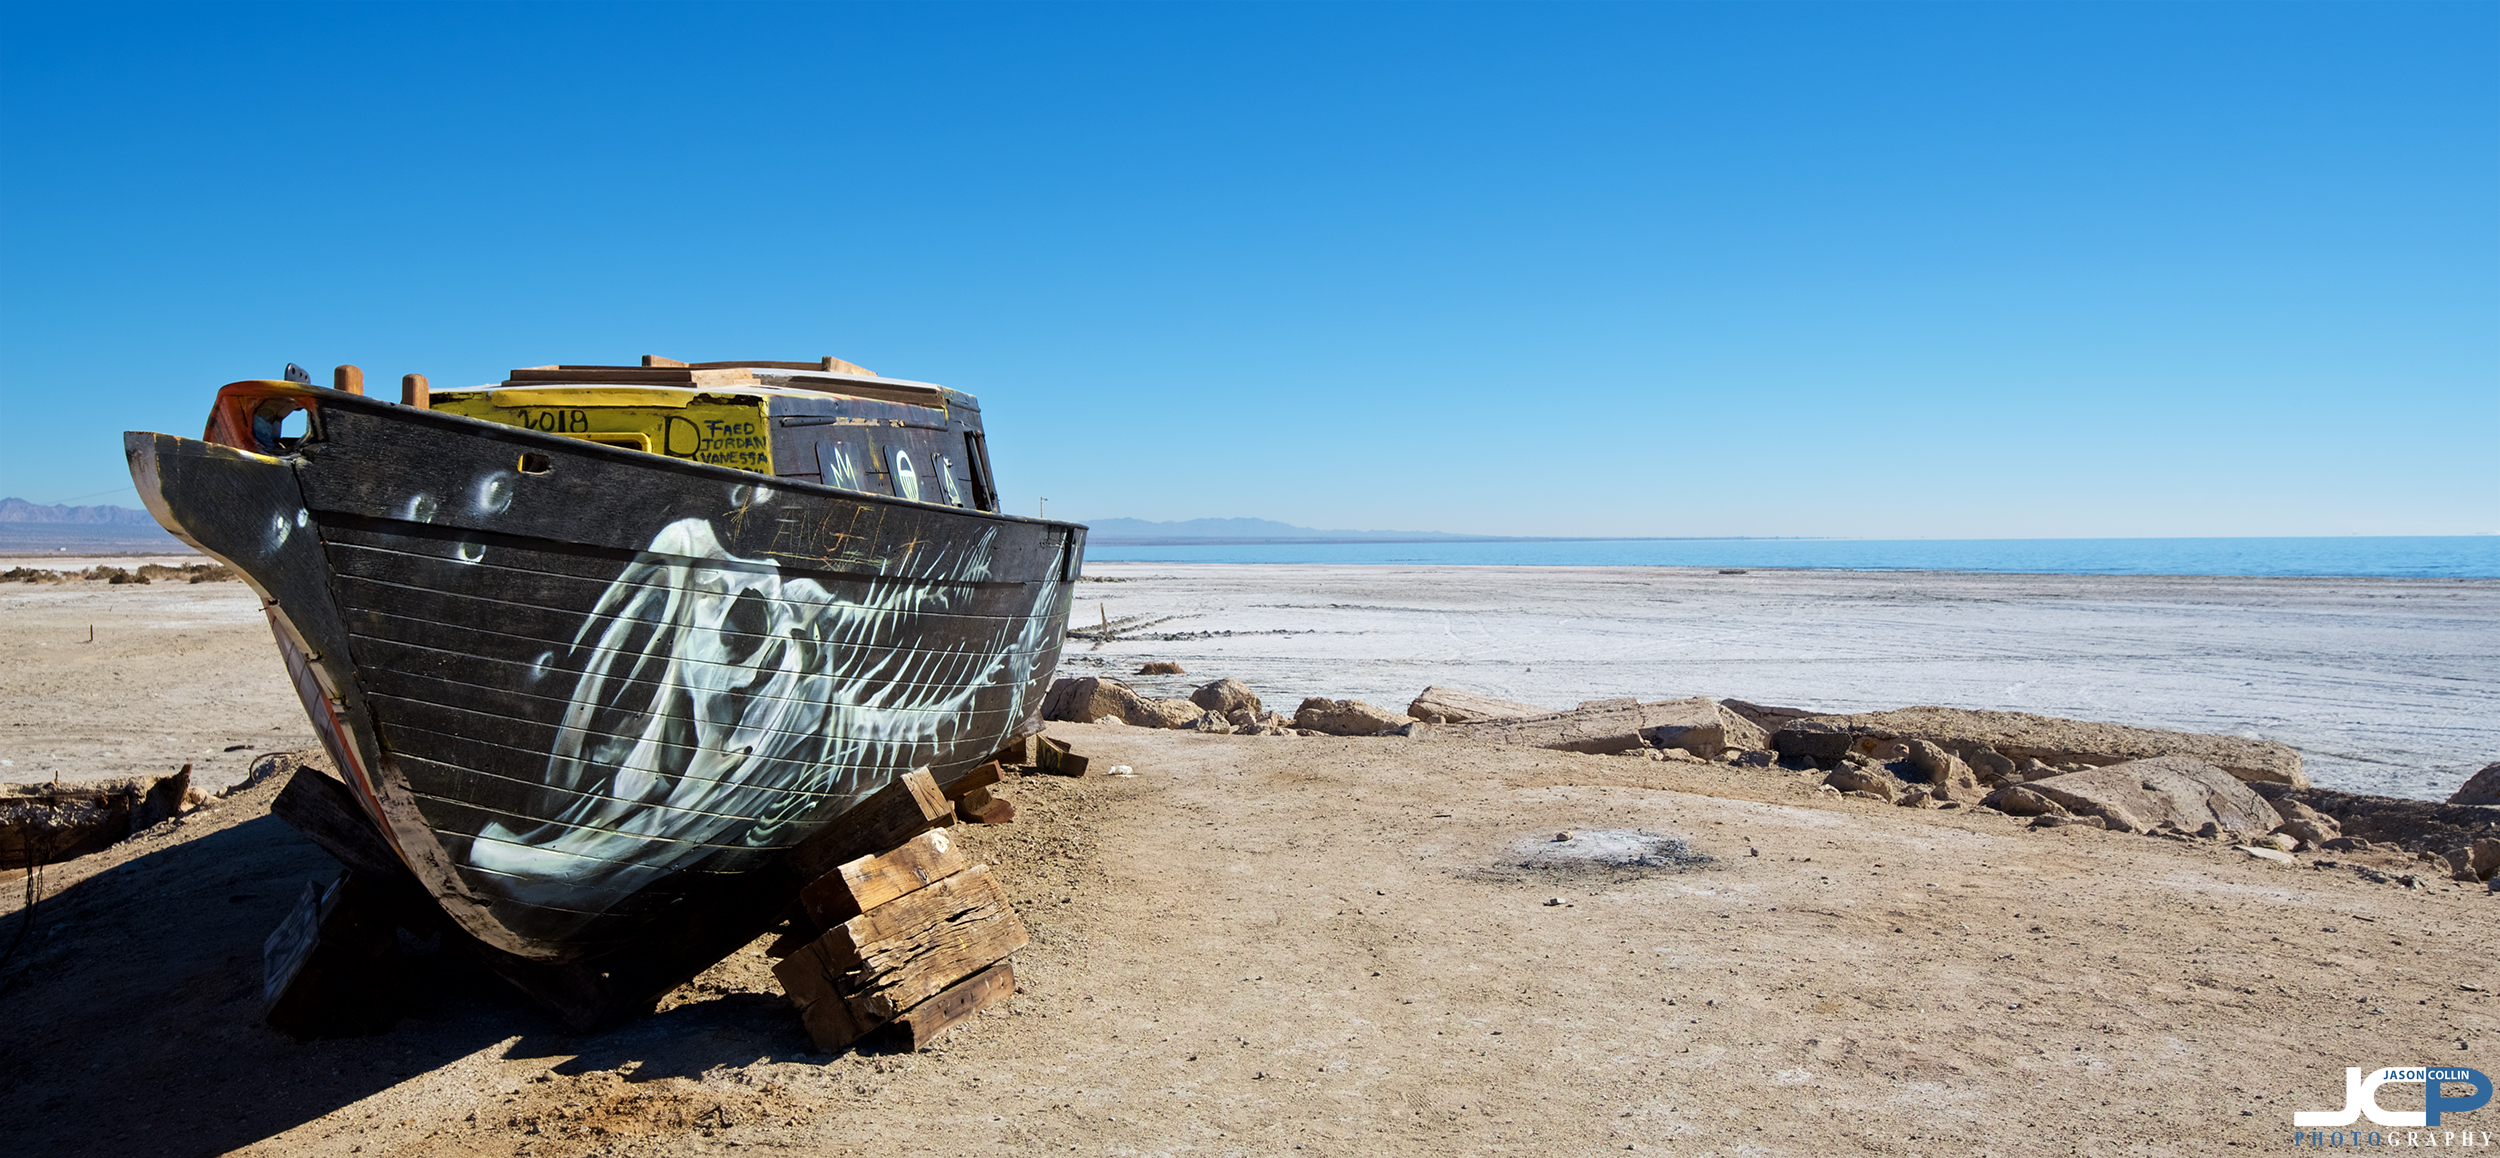 When did this boat last touch the Salton Sea as it sits on Bombay Beach, California?